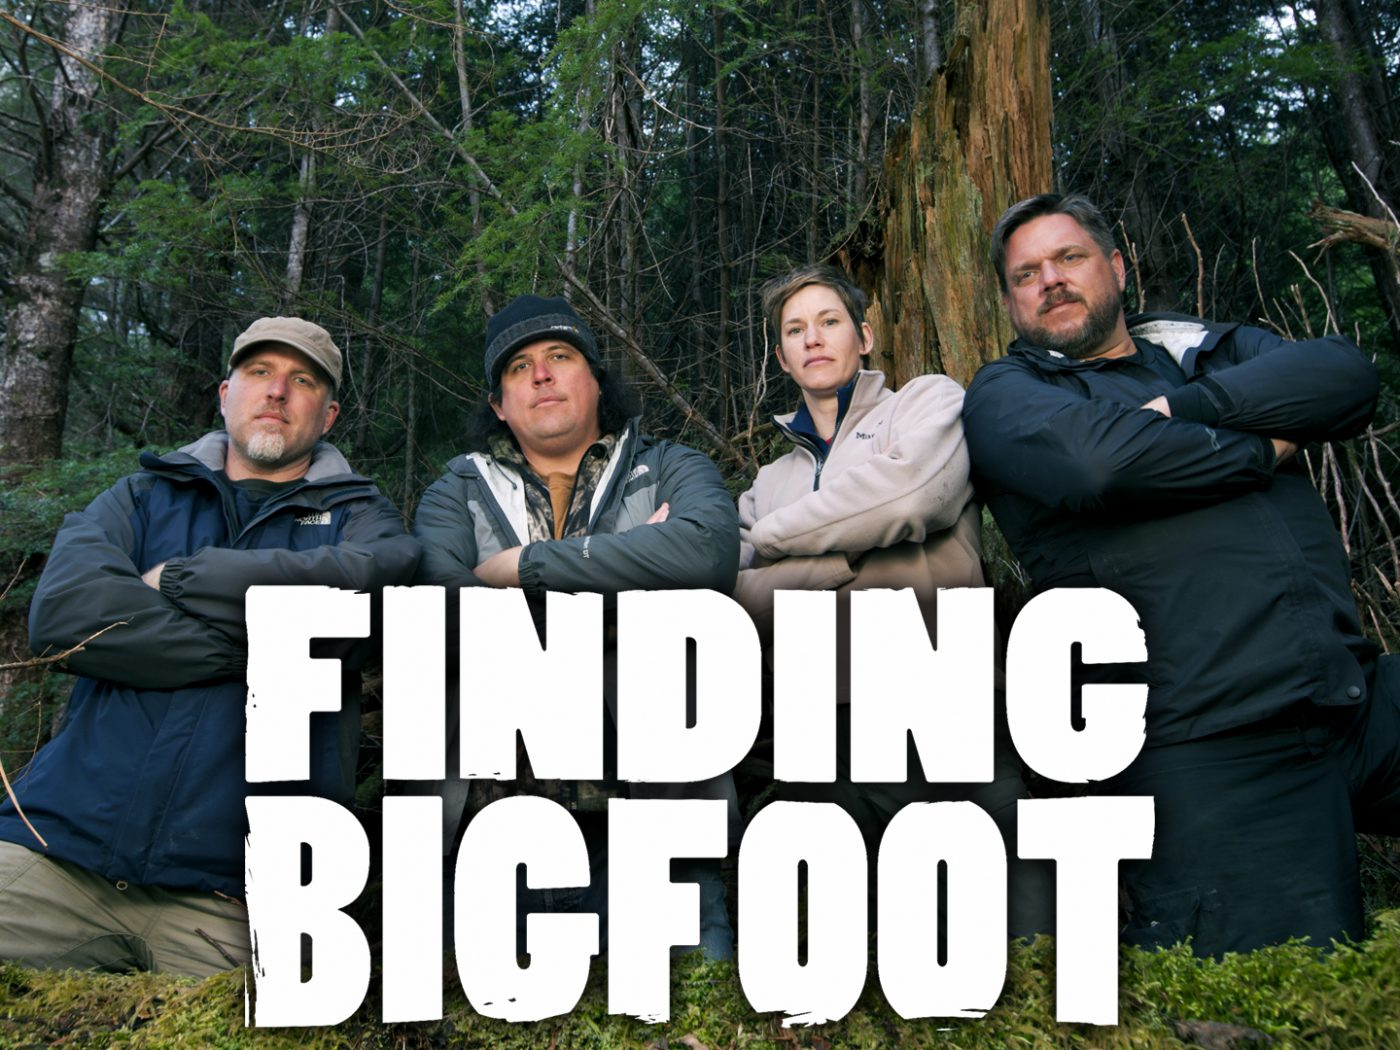 """Finding Bigfoot is a show about a team of esteemed """"experts"""" in all things Bigfoot. The group is a part of BFRO - Bigfoot Field Researchers Organization. Matt Moneymaker, a former lawyer, is the founder and president of the BFRO and thus, the leadman of the show. The rest of his BFRO team is rounded out by Ranae Holland, the supposedly skeptical field biologist. Cliff Barackman, the evidence analyst and self proclaimed Bigfoot nerd. Last but not least there's James """"Bobo"""" Fay, the expert field caller and comic relief of the show (on this program, that's saying something)."""